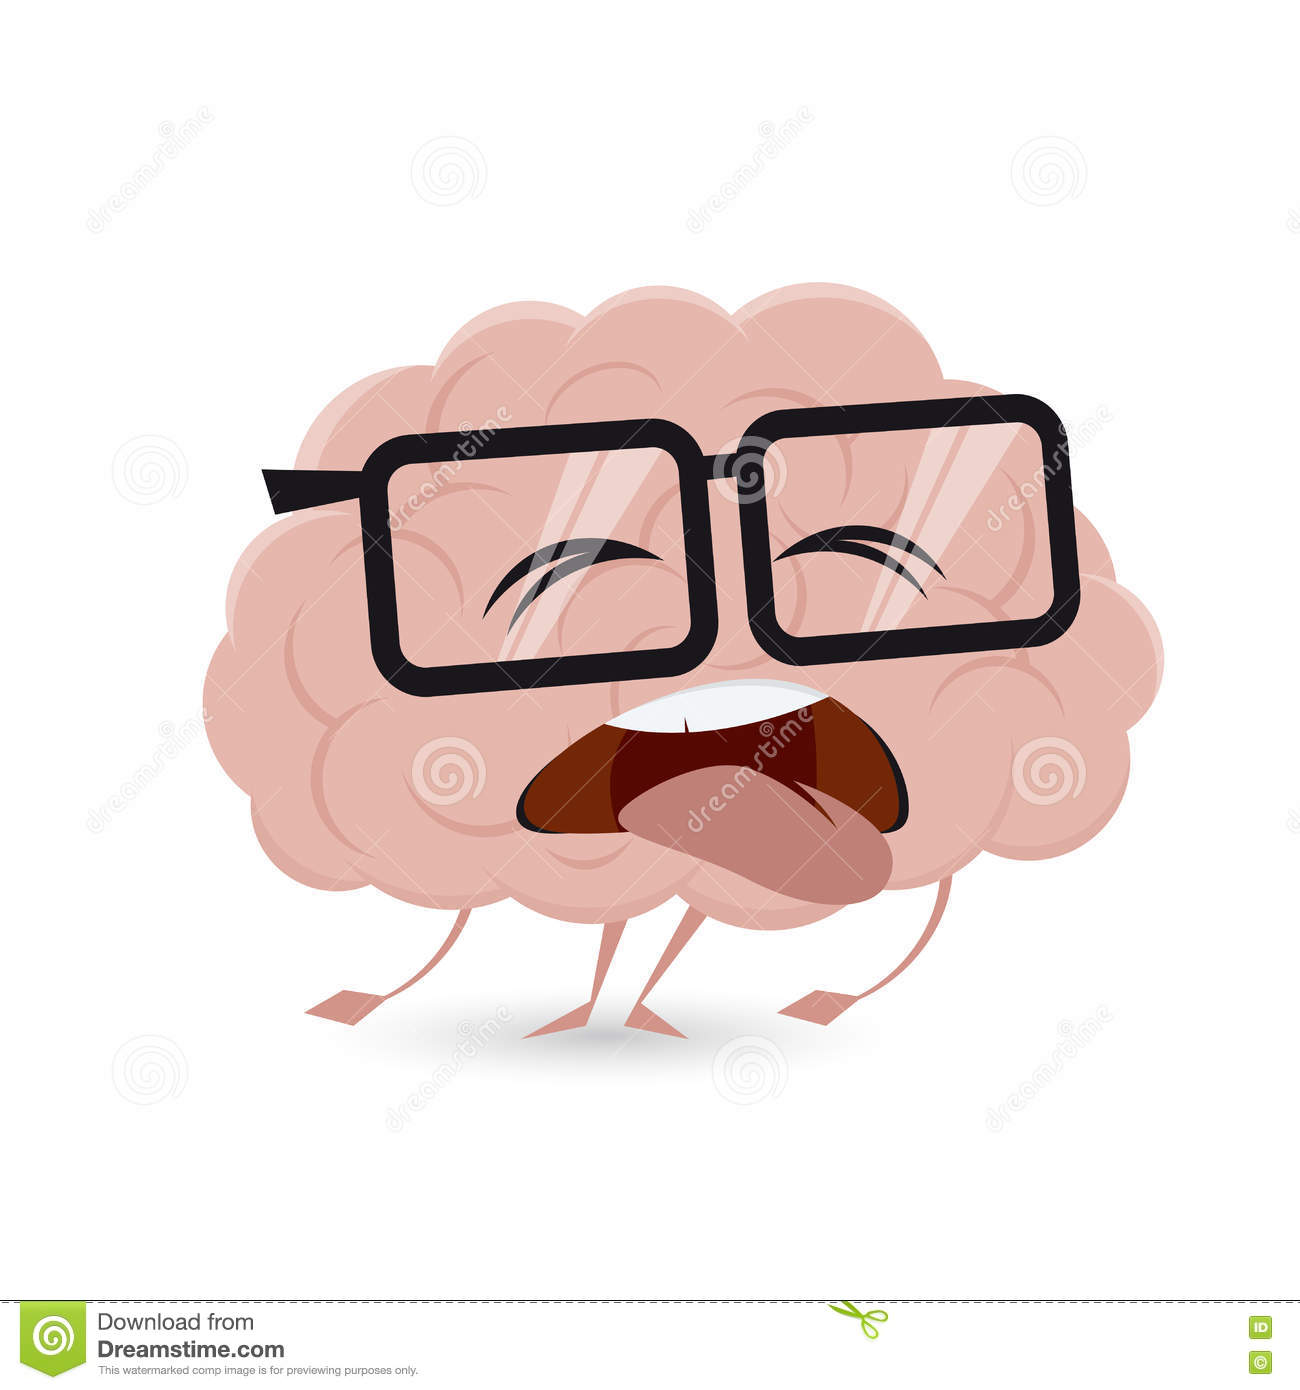 Exhausted brain clipart stock vector. Illustration of cute.